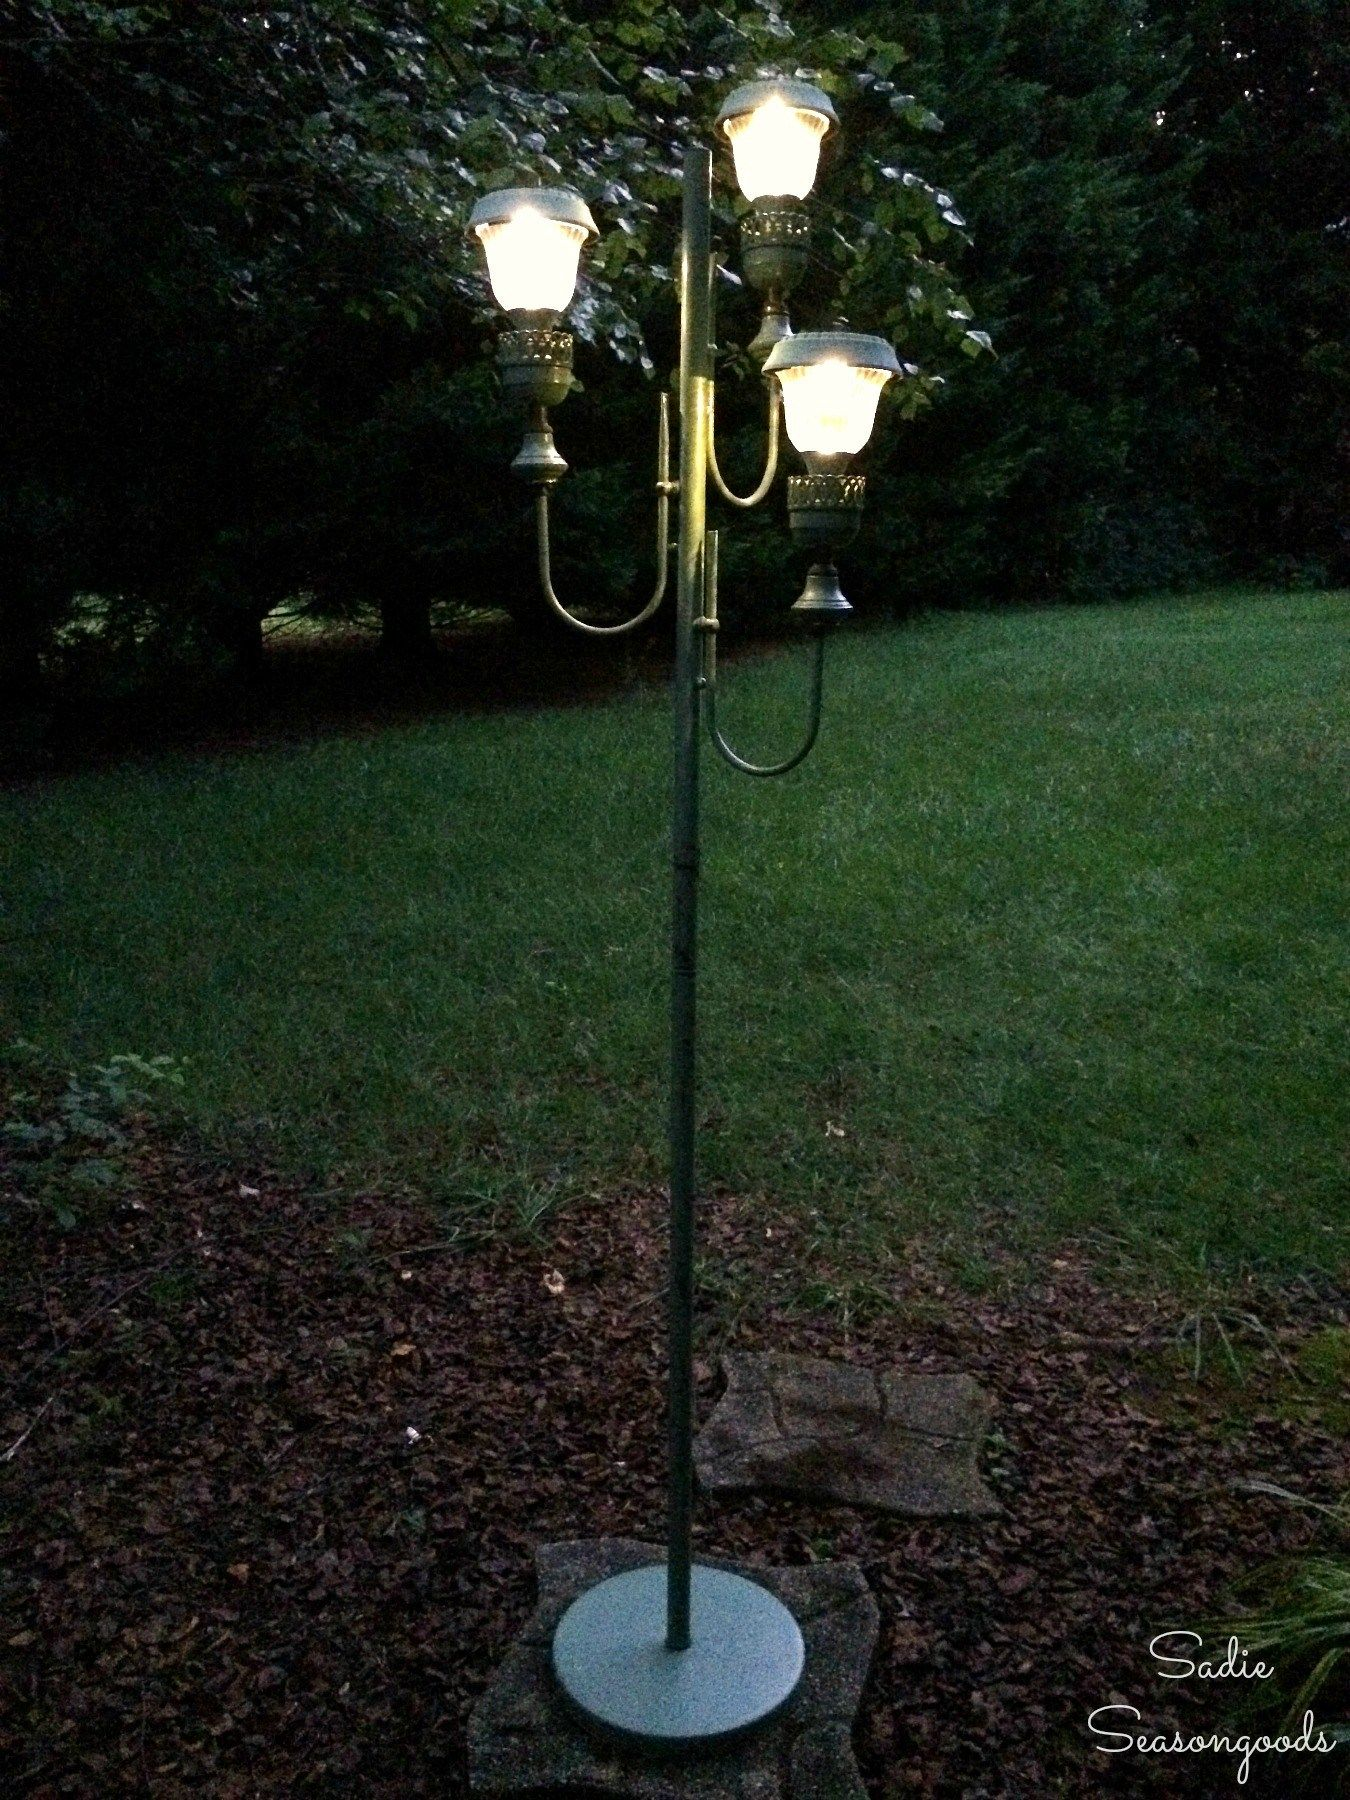 Backyard Decor with an Antique Floor Lamp and Small Solar